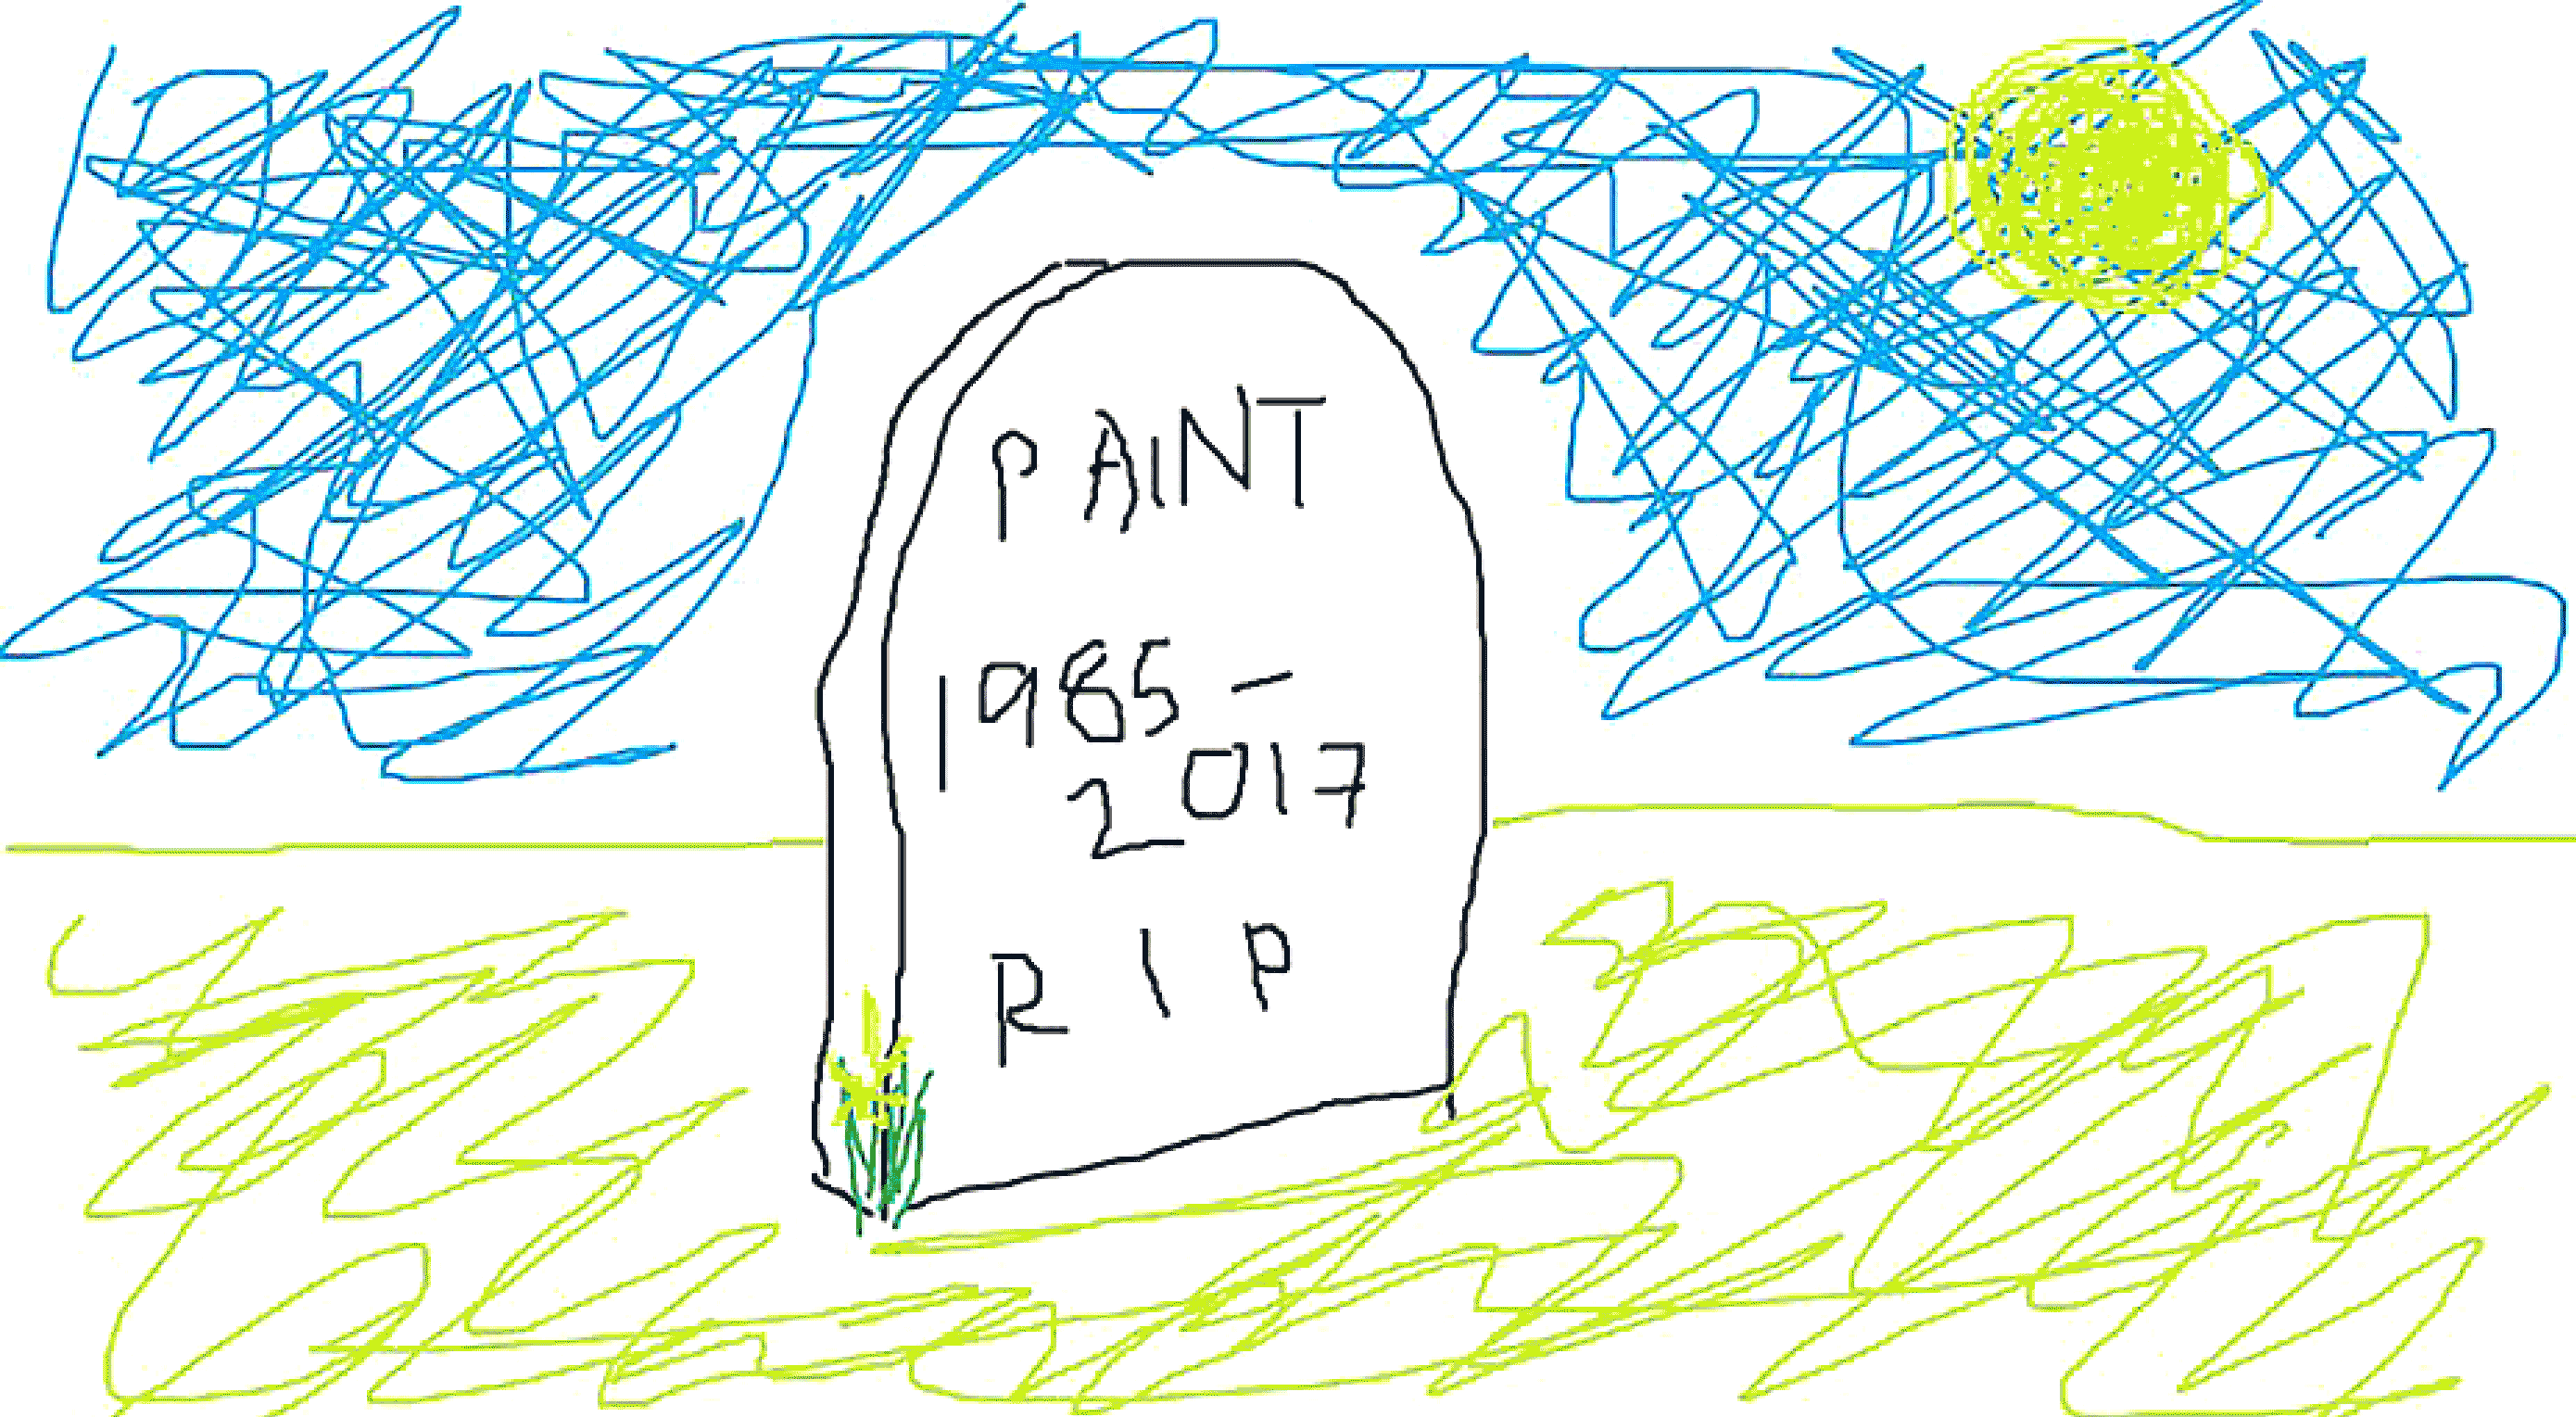 RIP MS Paint, You Will be Missed